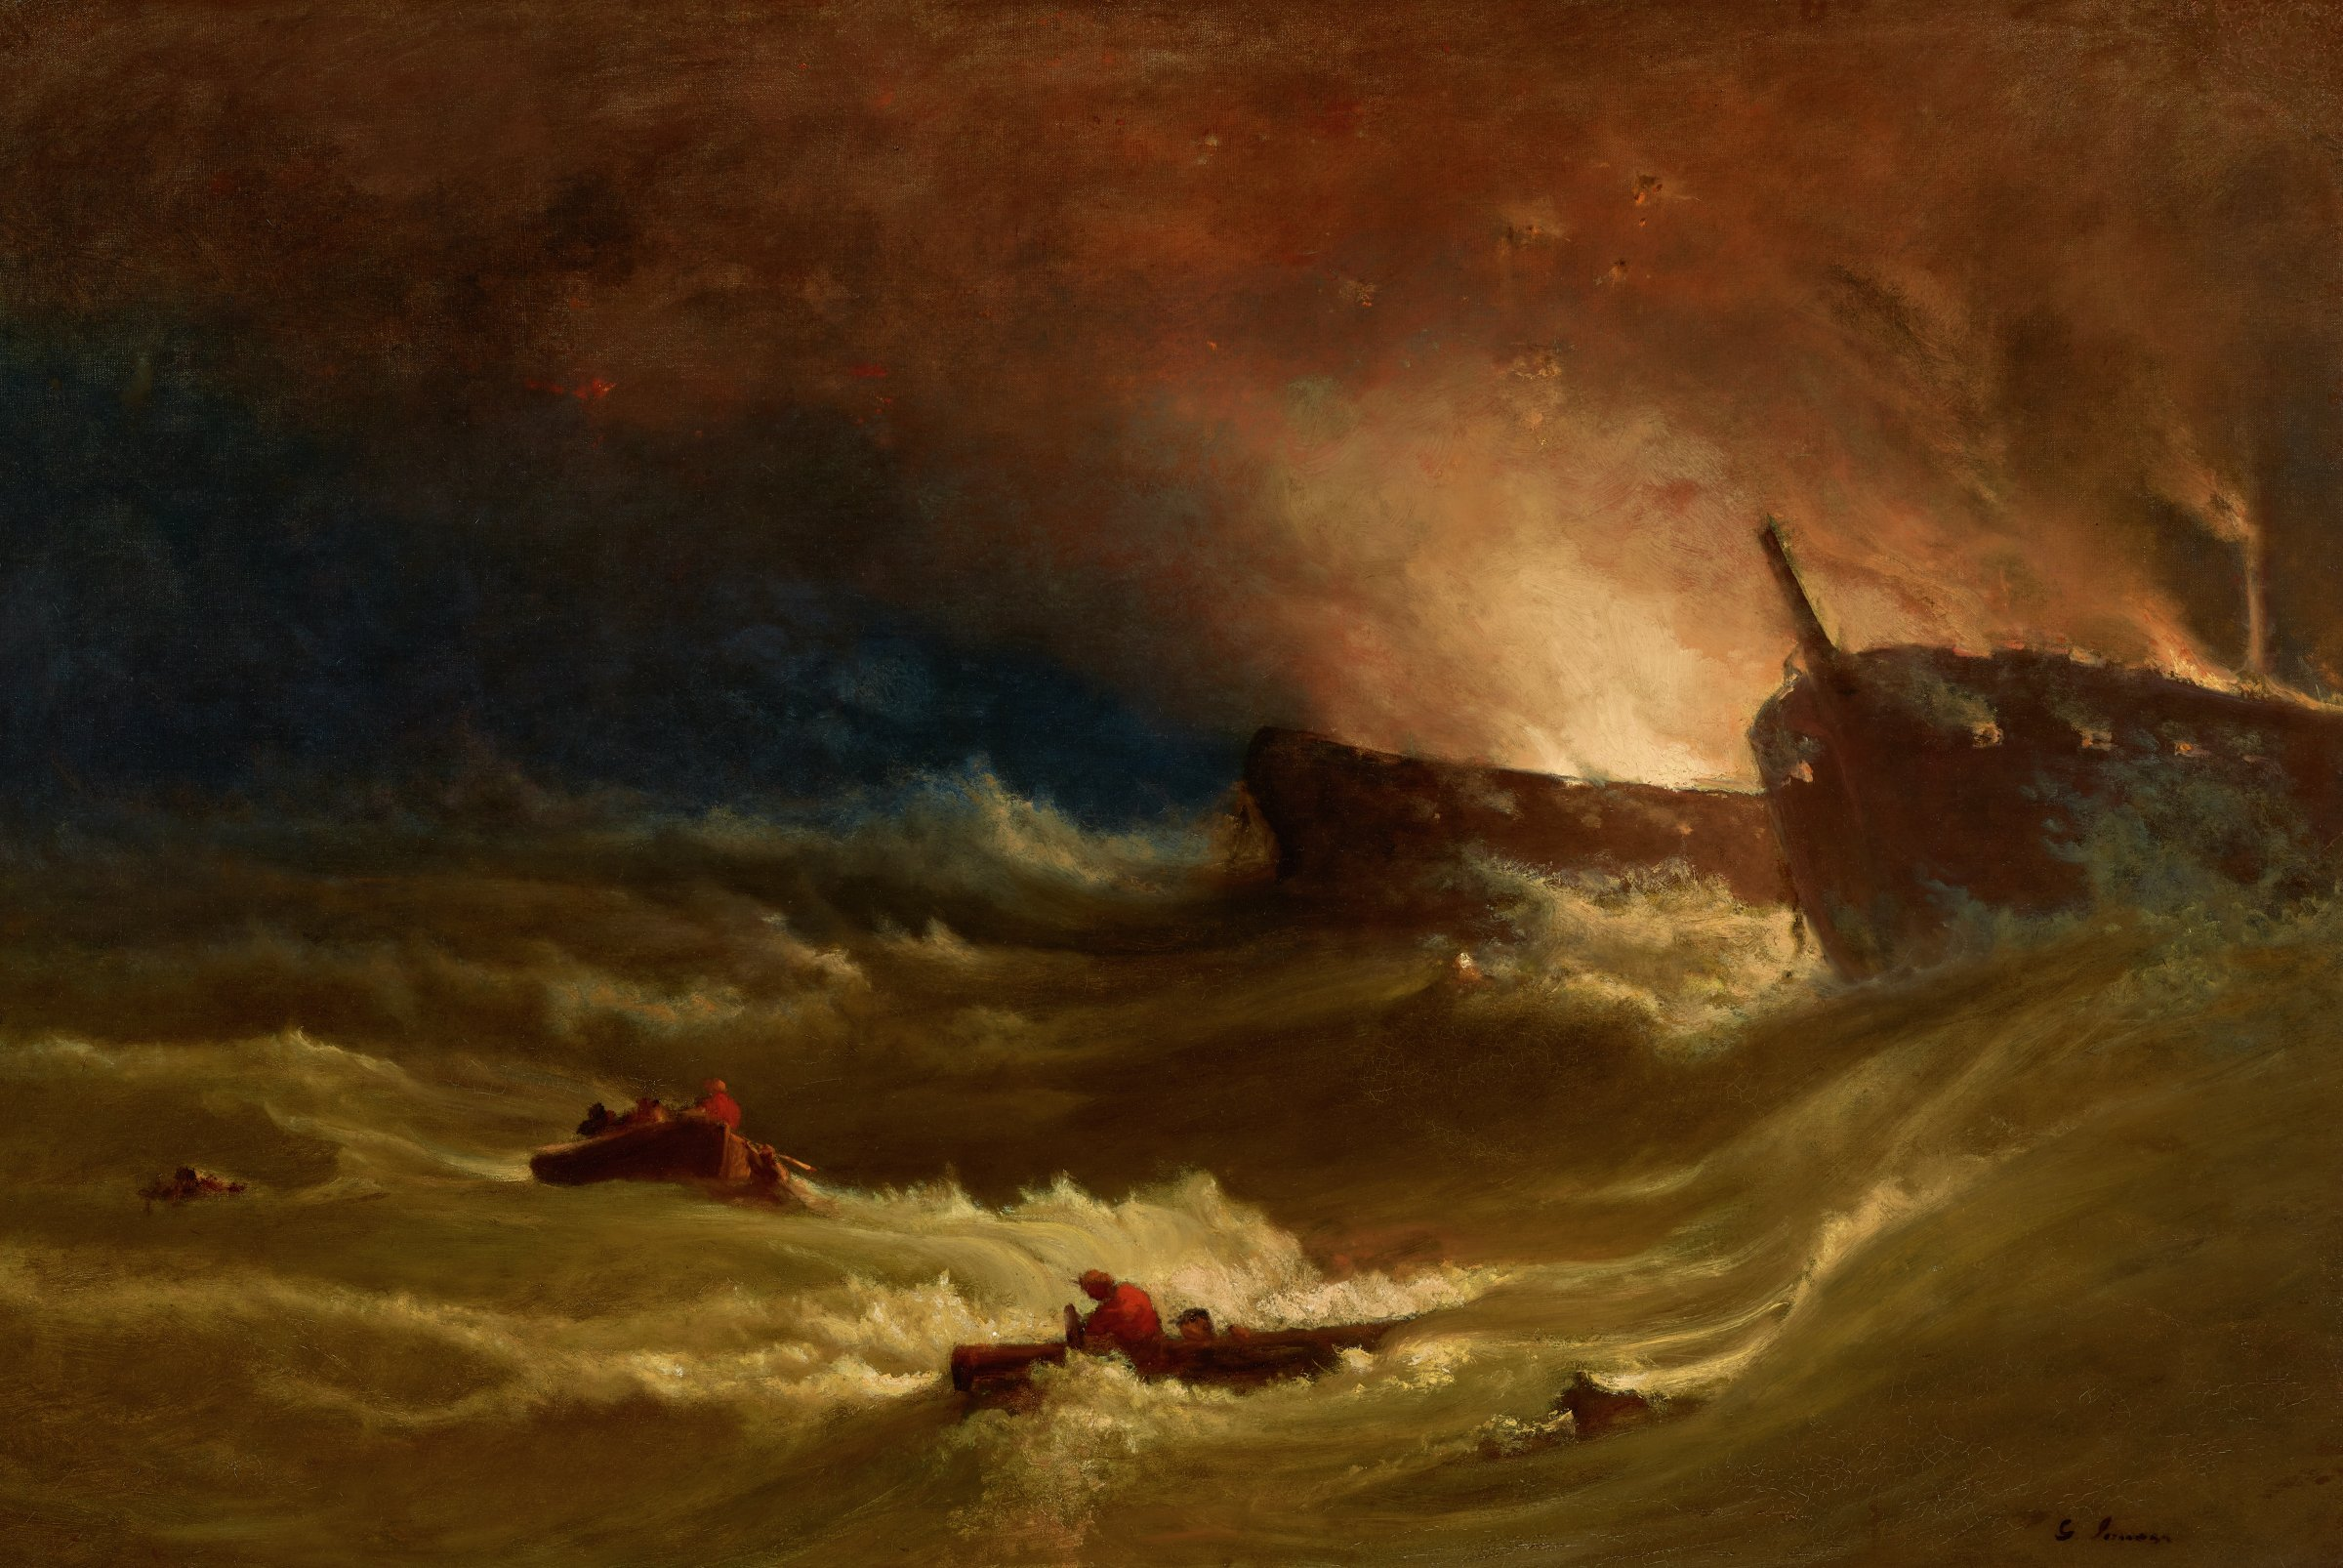 """In his catalogue raisonné of Inness's work, Michael Quick describes the painting, writing, """"On the right are two dismasted battleships, both aflame, the nearer one silhouetted by the brighter, explosive glow from the one behind it. In the rolling waves at the left, men escape in three rowboats. The conflagration lights up the foreground waves and the clouded night sky."""""""